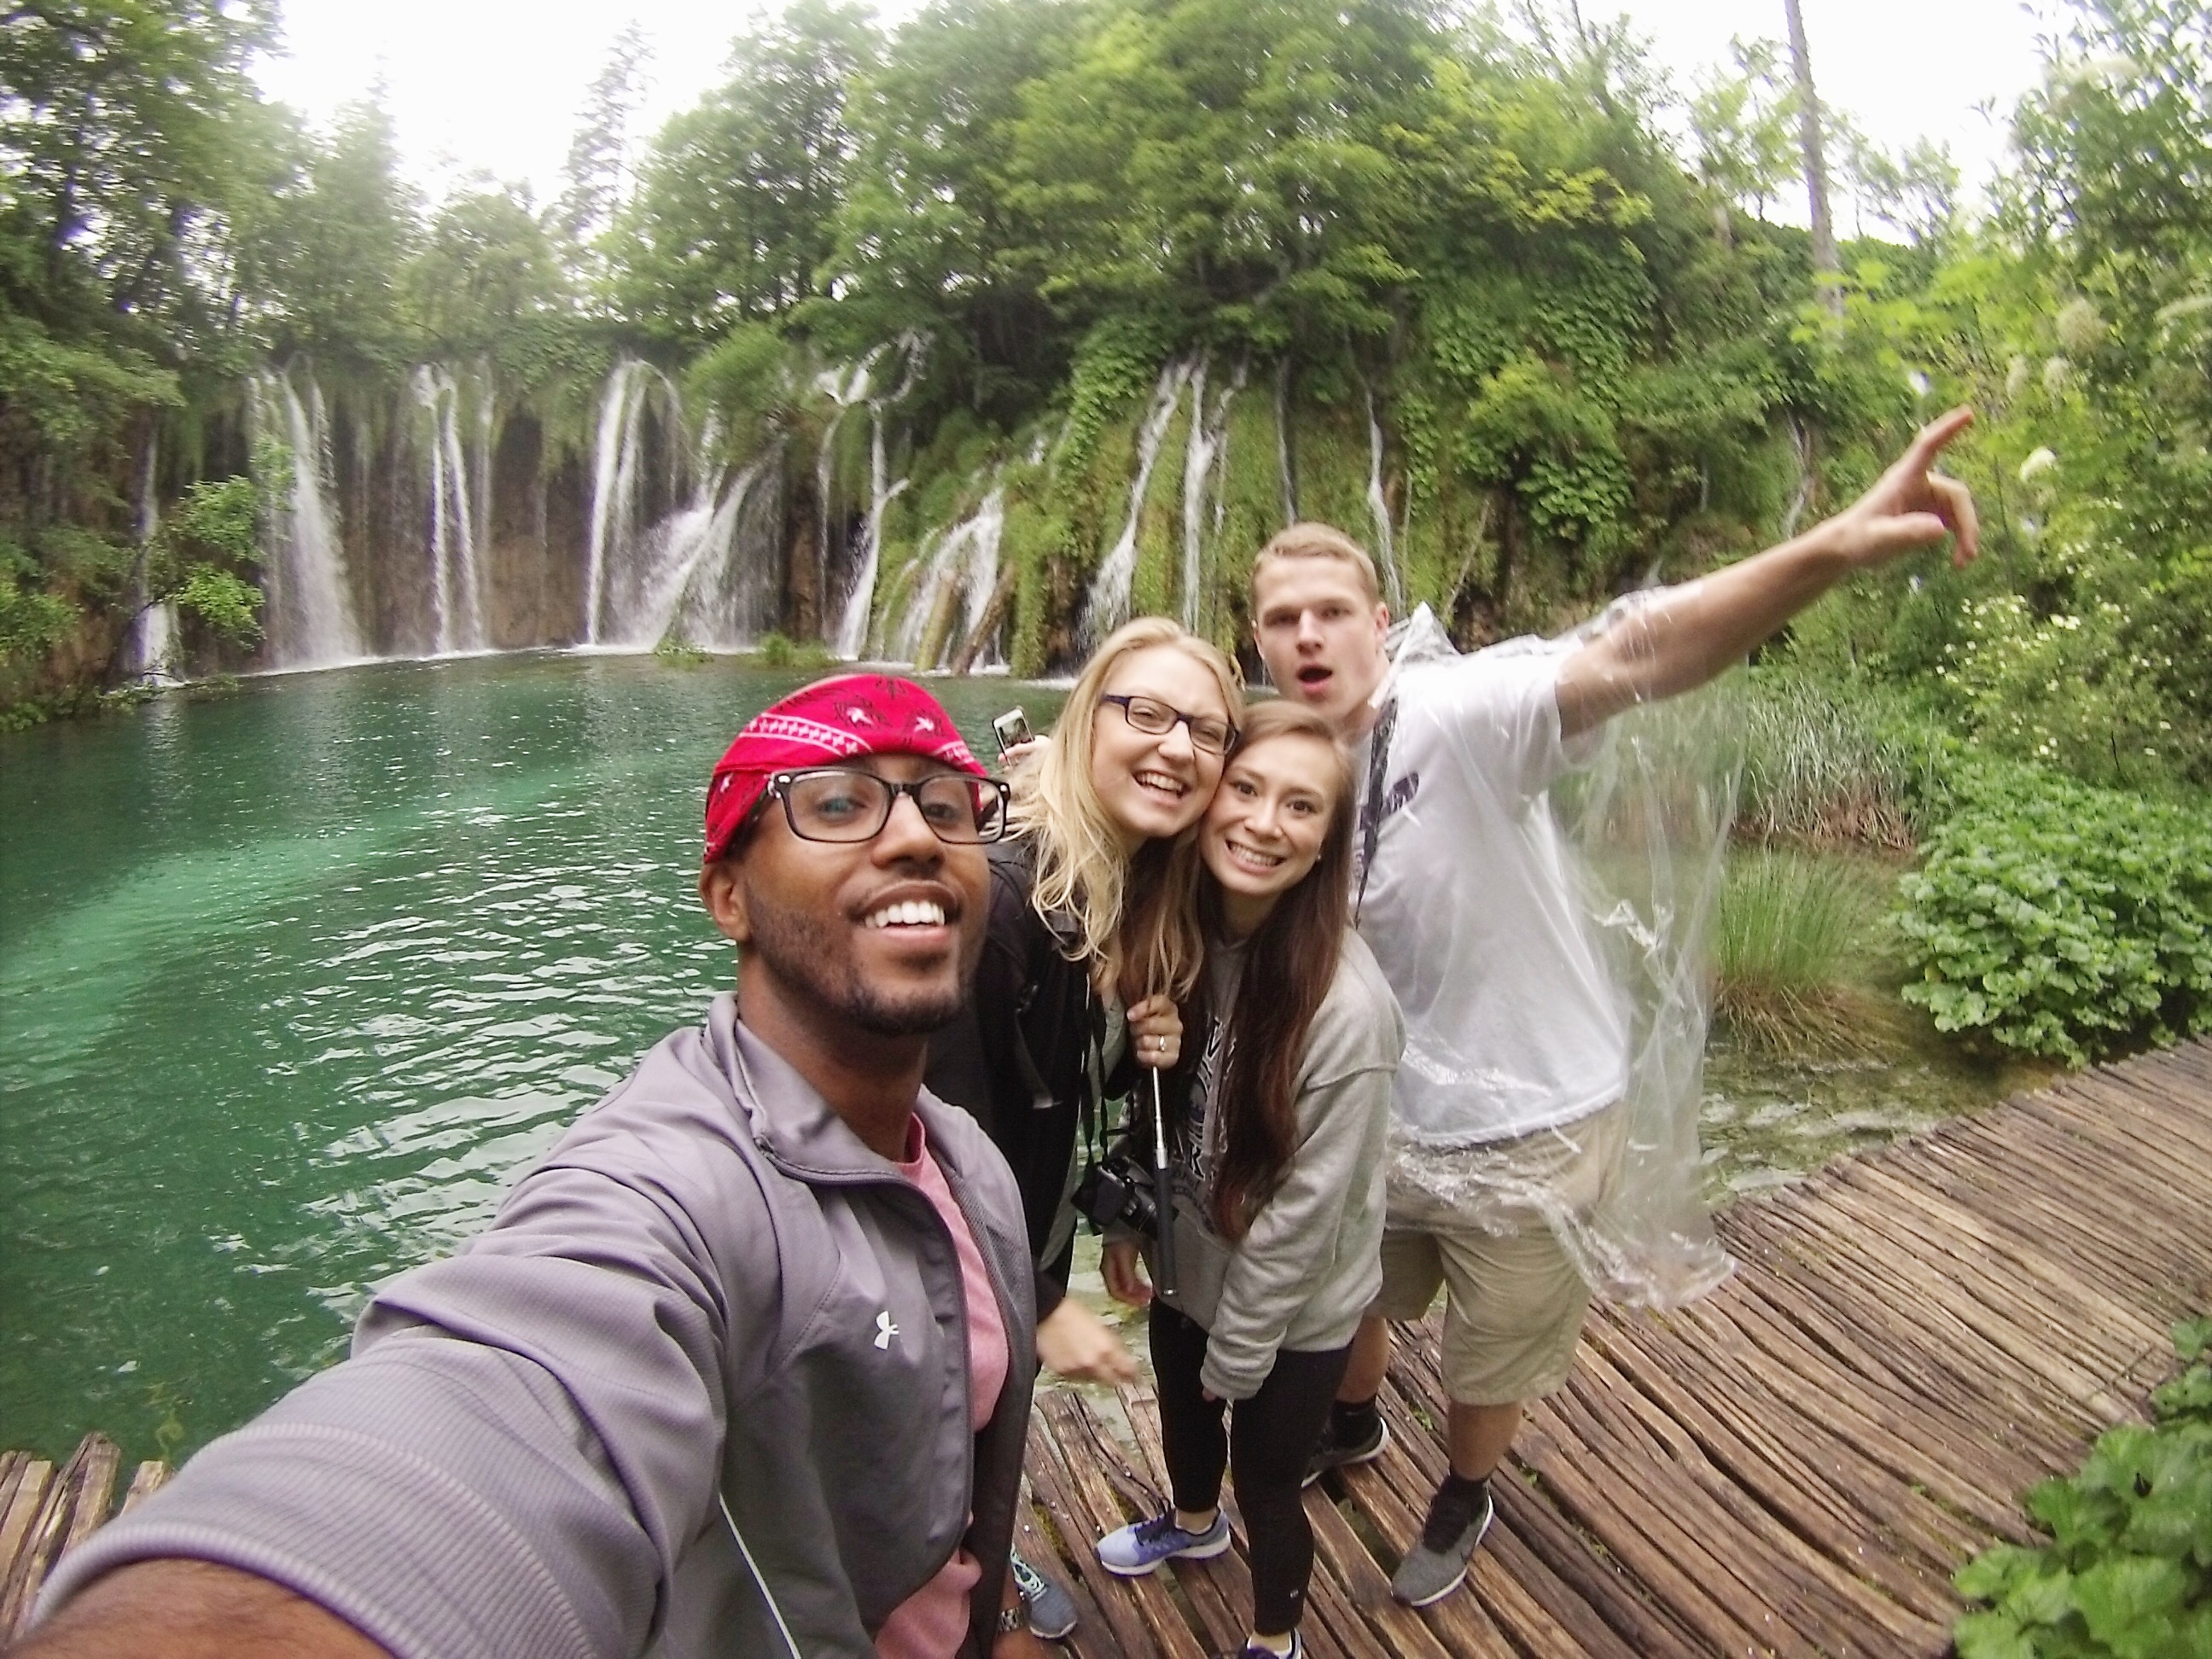 Four students taking a selfie in front of a waterfall